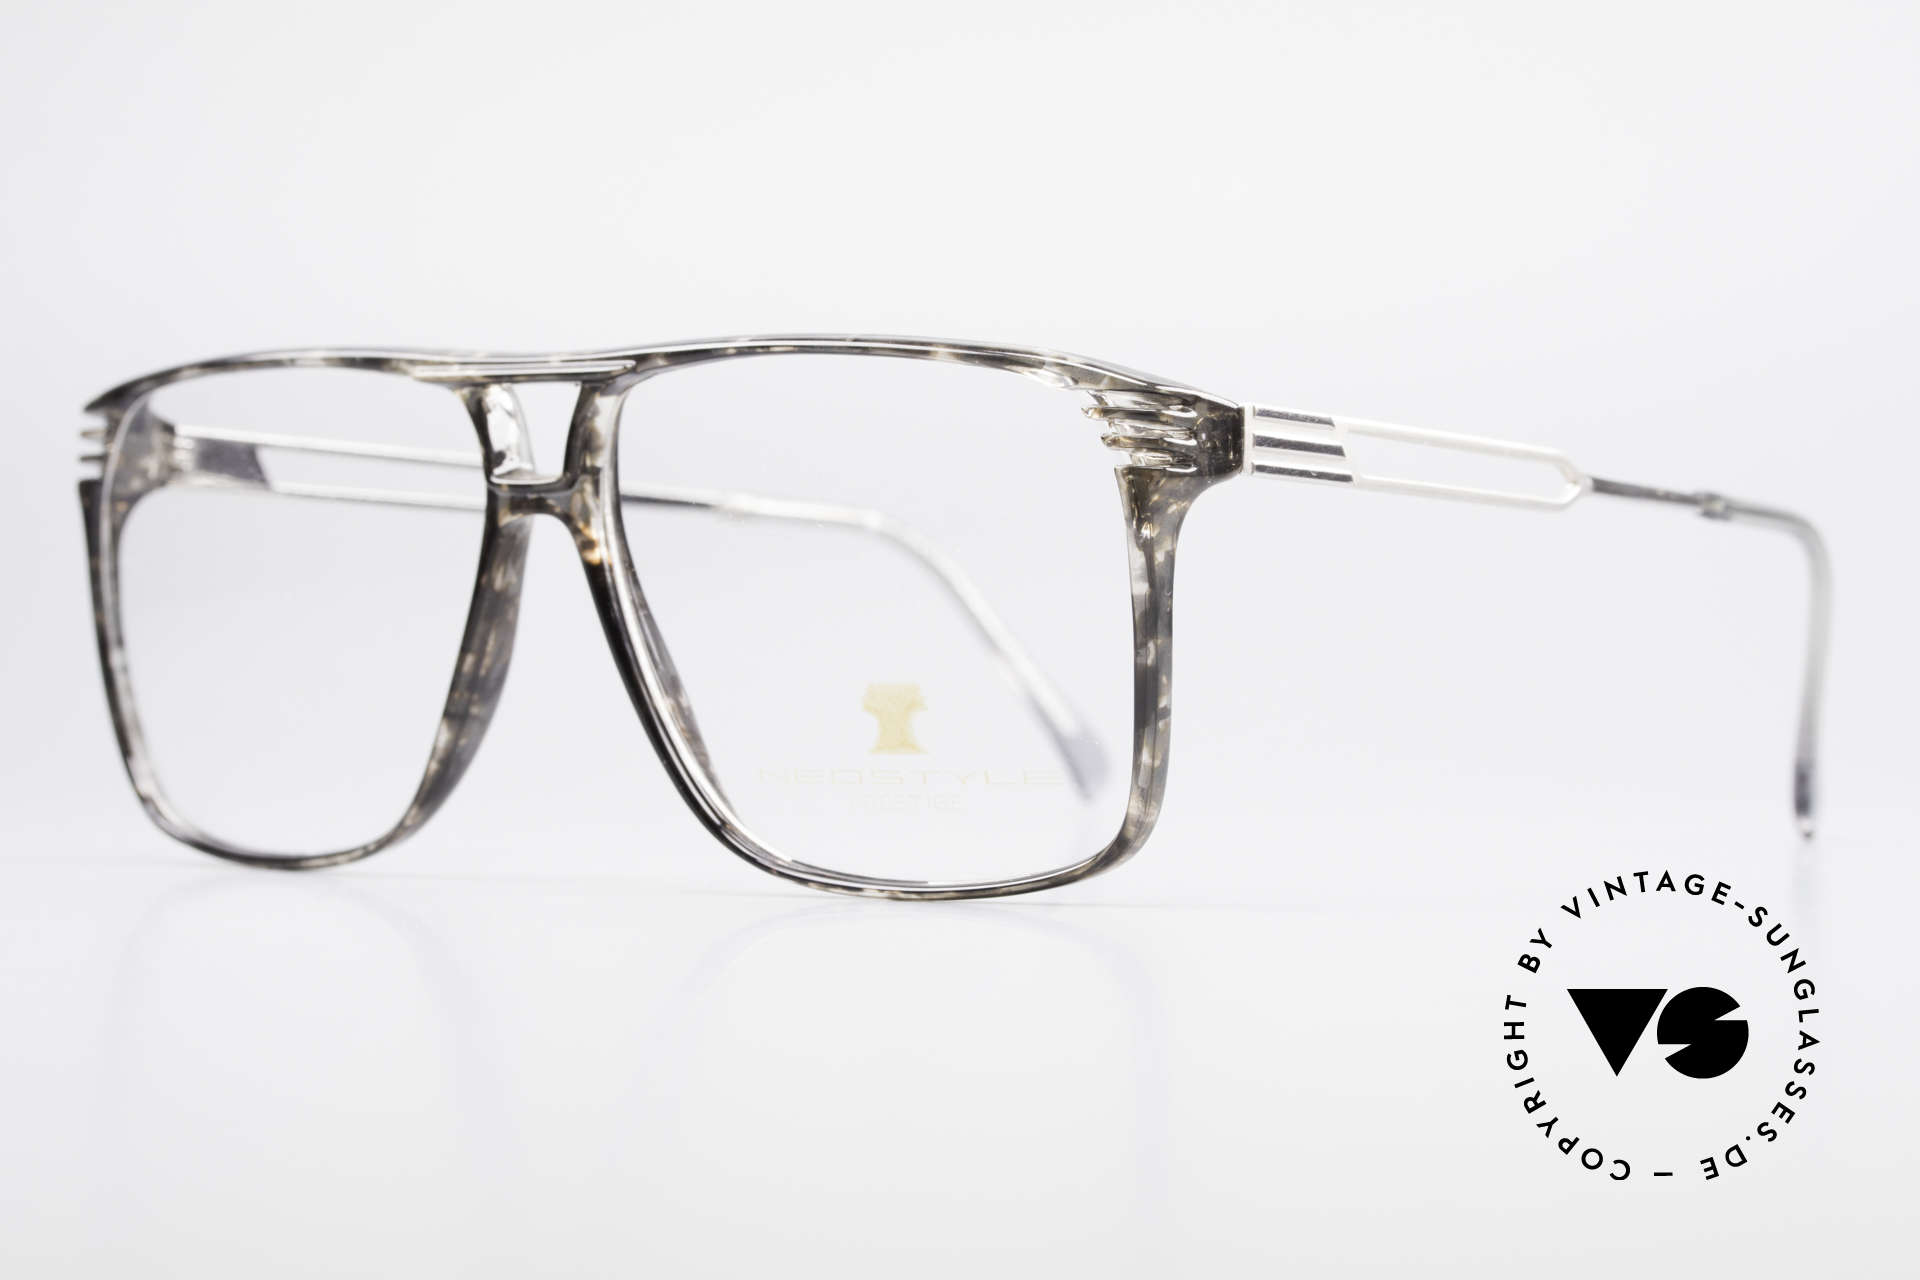 Neostyle Rotary Prestige 33 Titan Frame 80's Eyeglasses, grayish-clear frame coloring (characteristical 80's), Made for Men